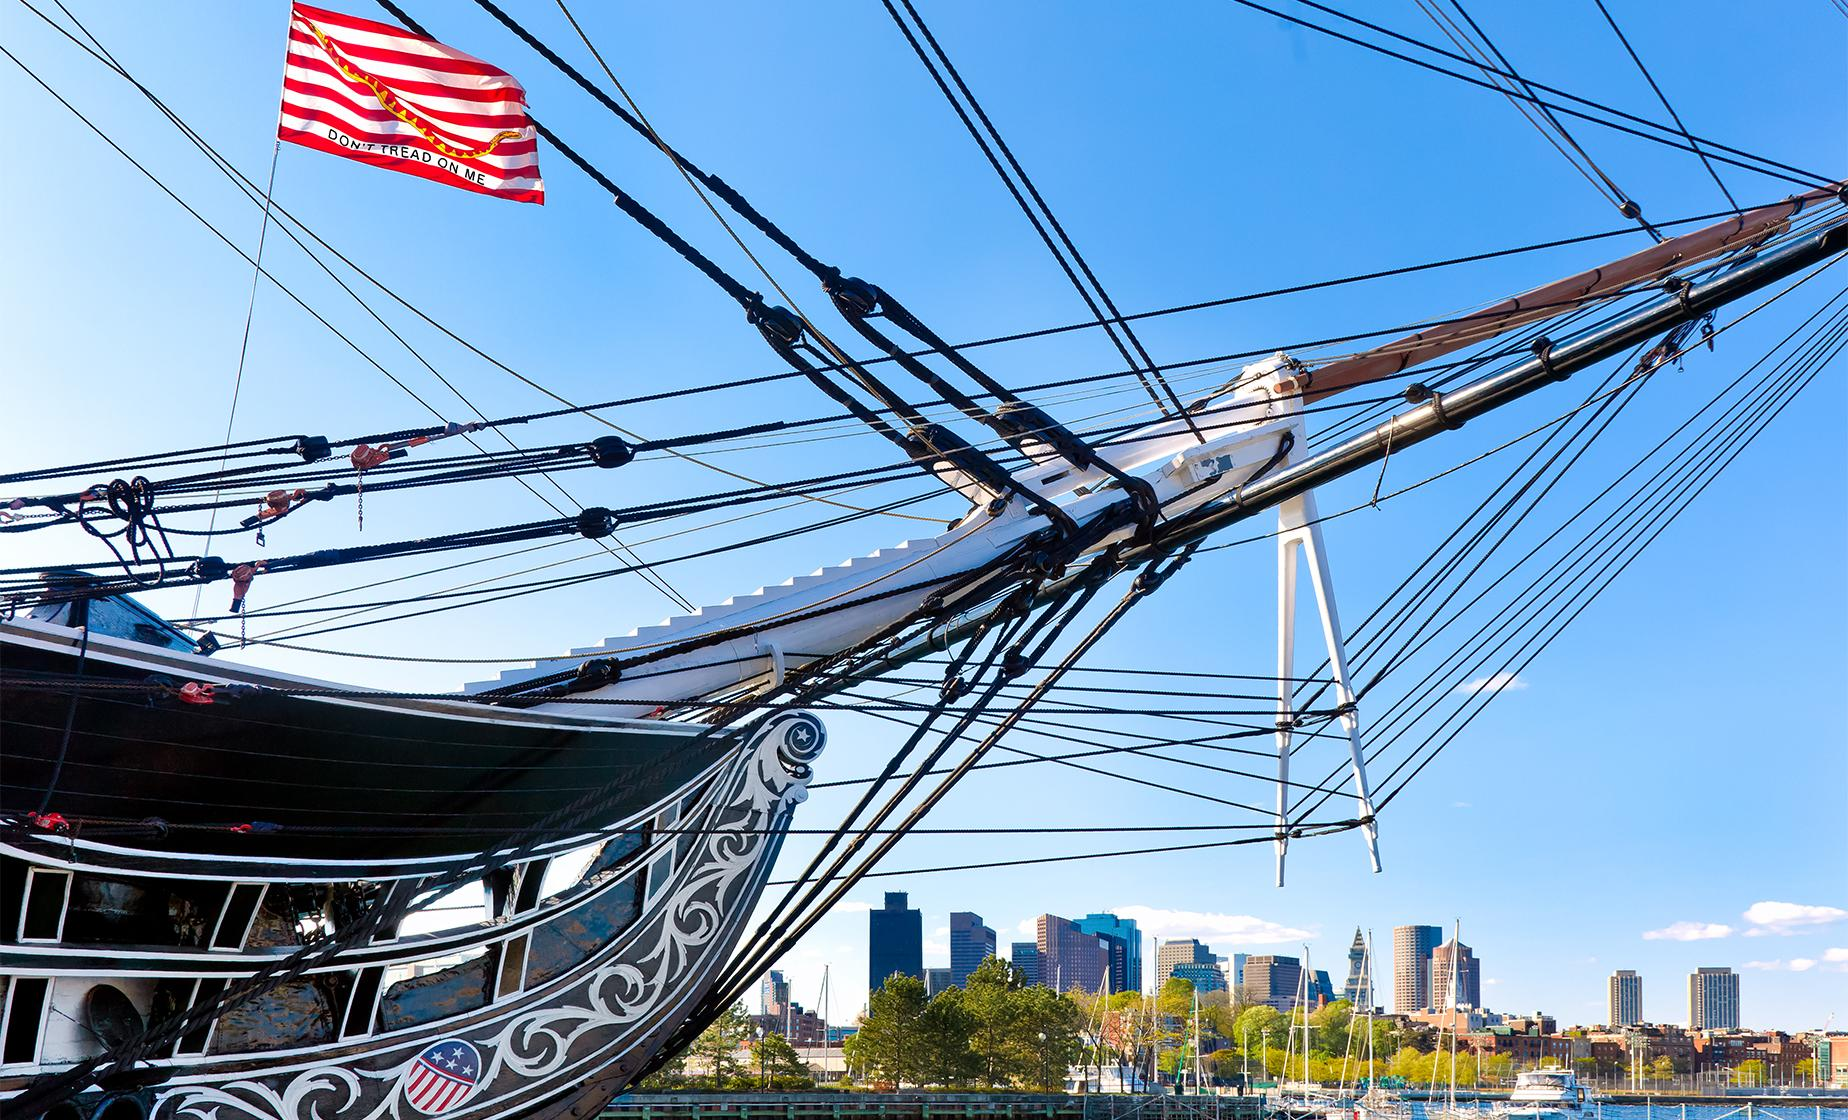 Classic Trolley, Freedom Trail and Harbor Cruise Tour in Boston (Little Italy, Quincy Market)